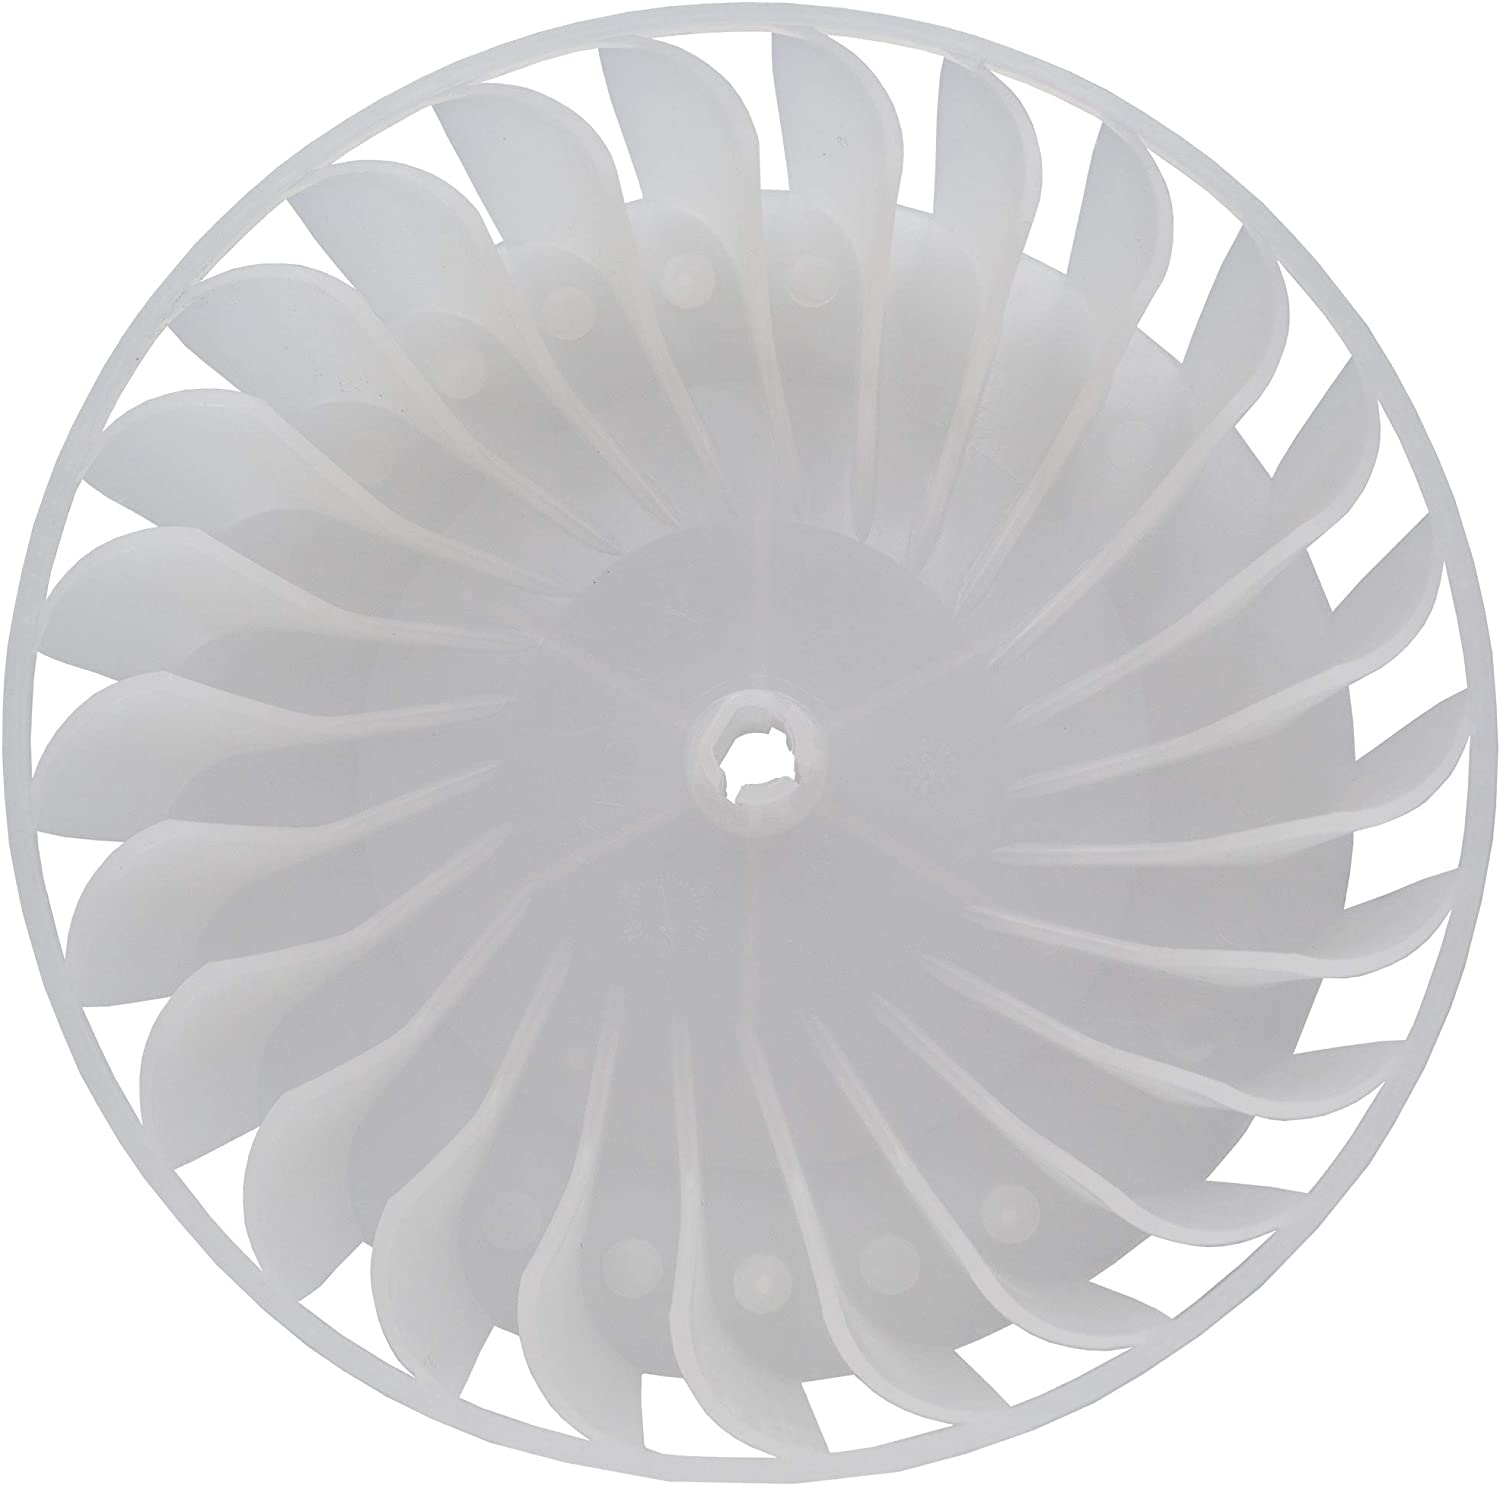 Supplying Demand 131476300 Dryer Blower Wheel Replaces 1314763, 145746